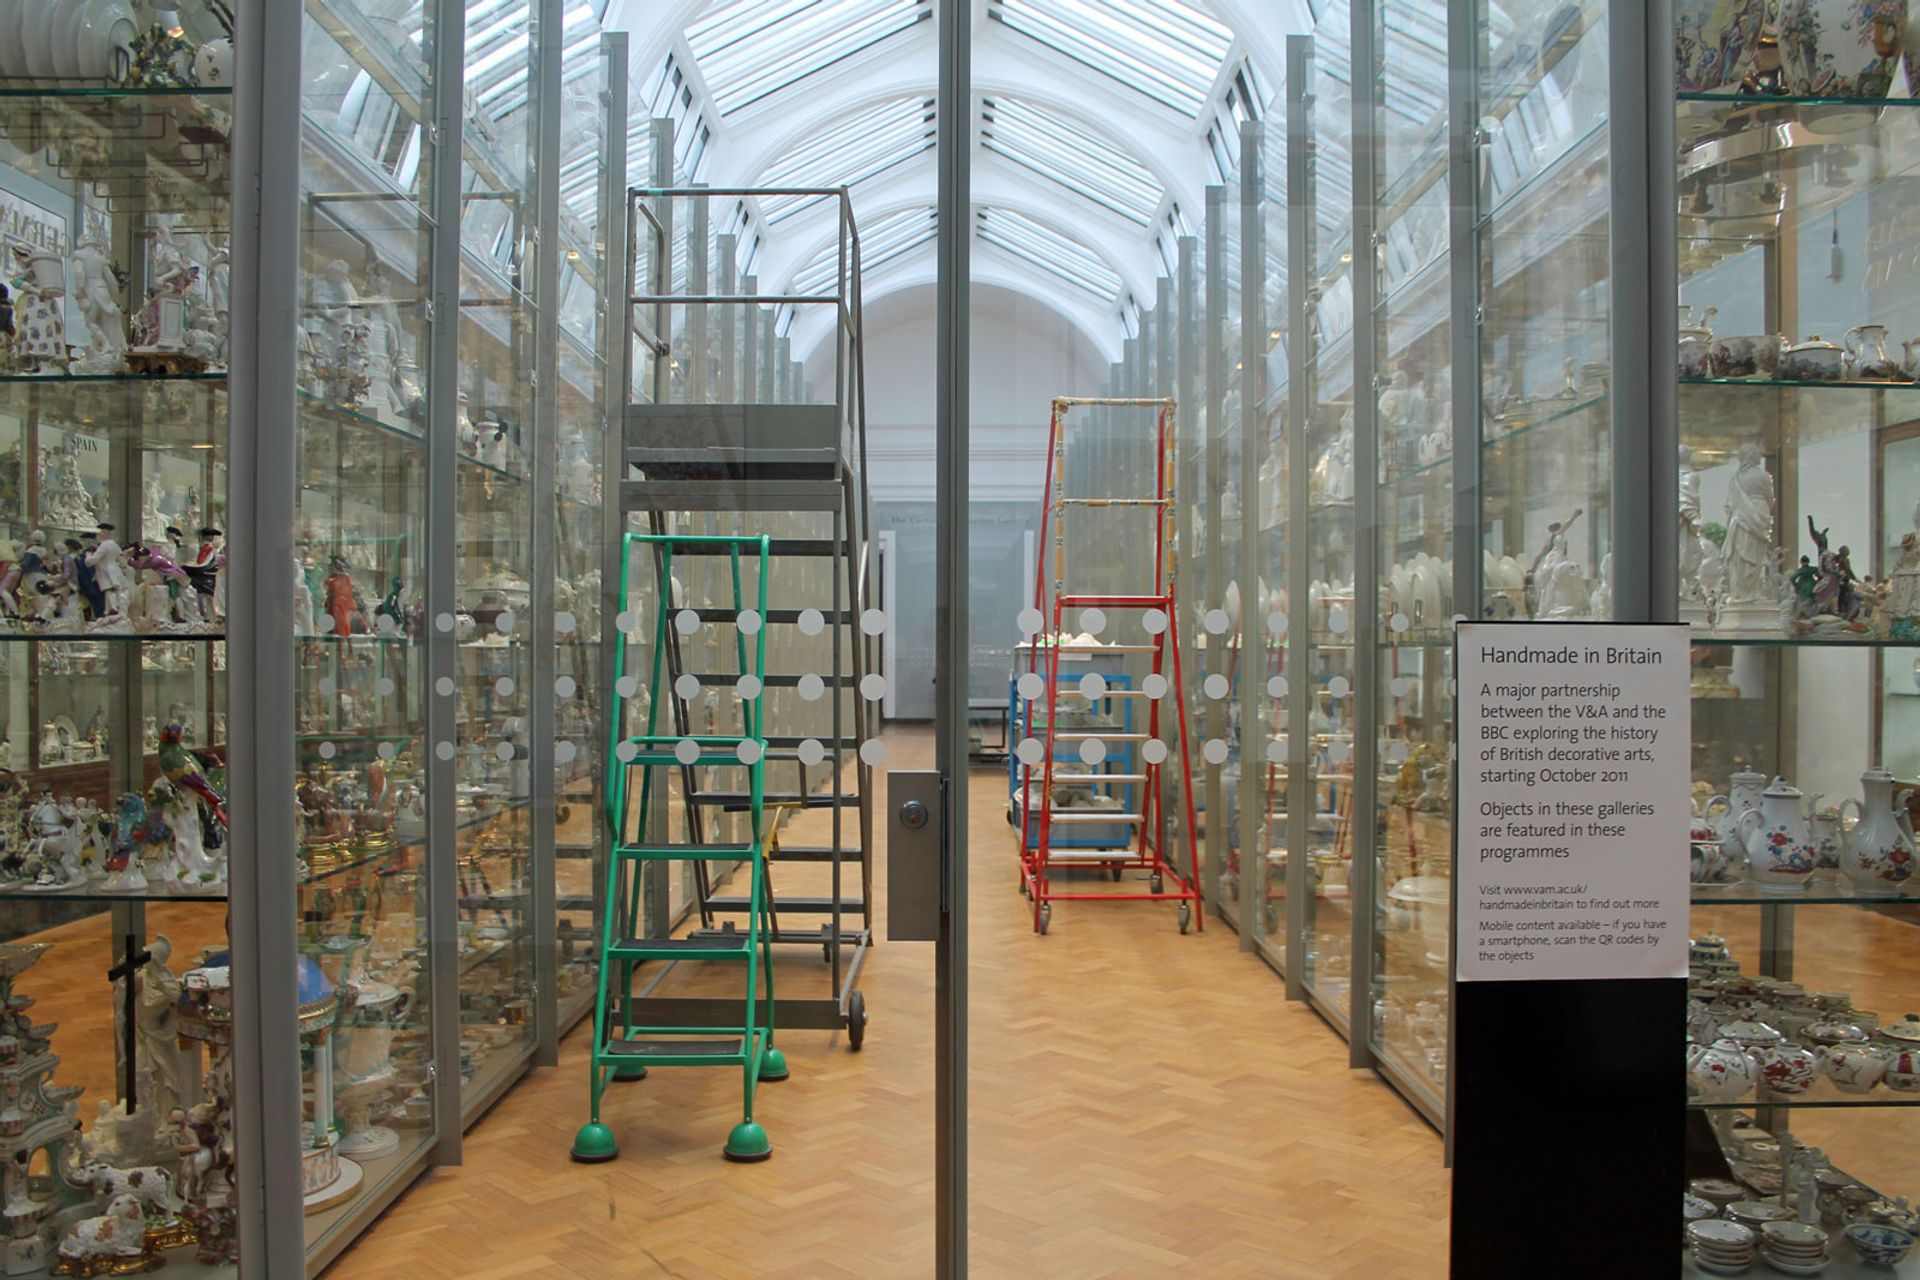 Visible storage at the Victoria & Albert Museum in London Wikimedia Commons